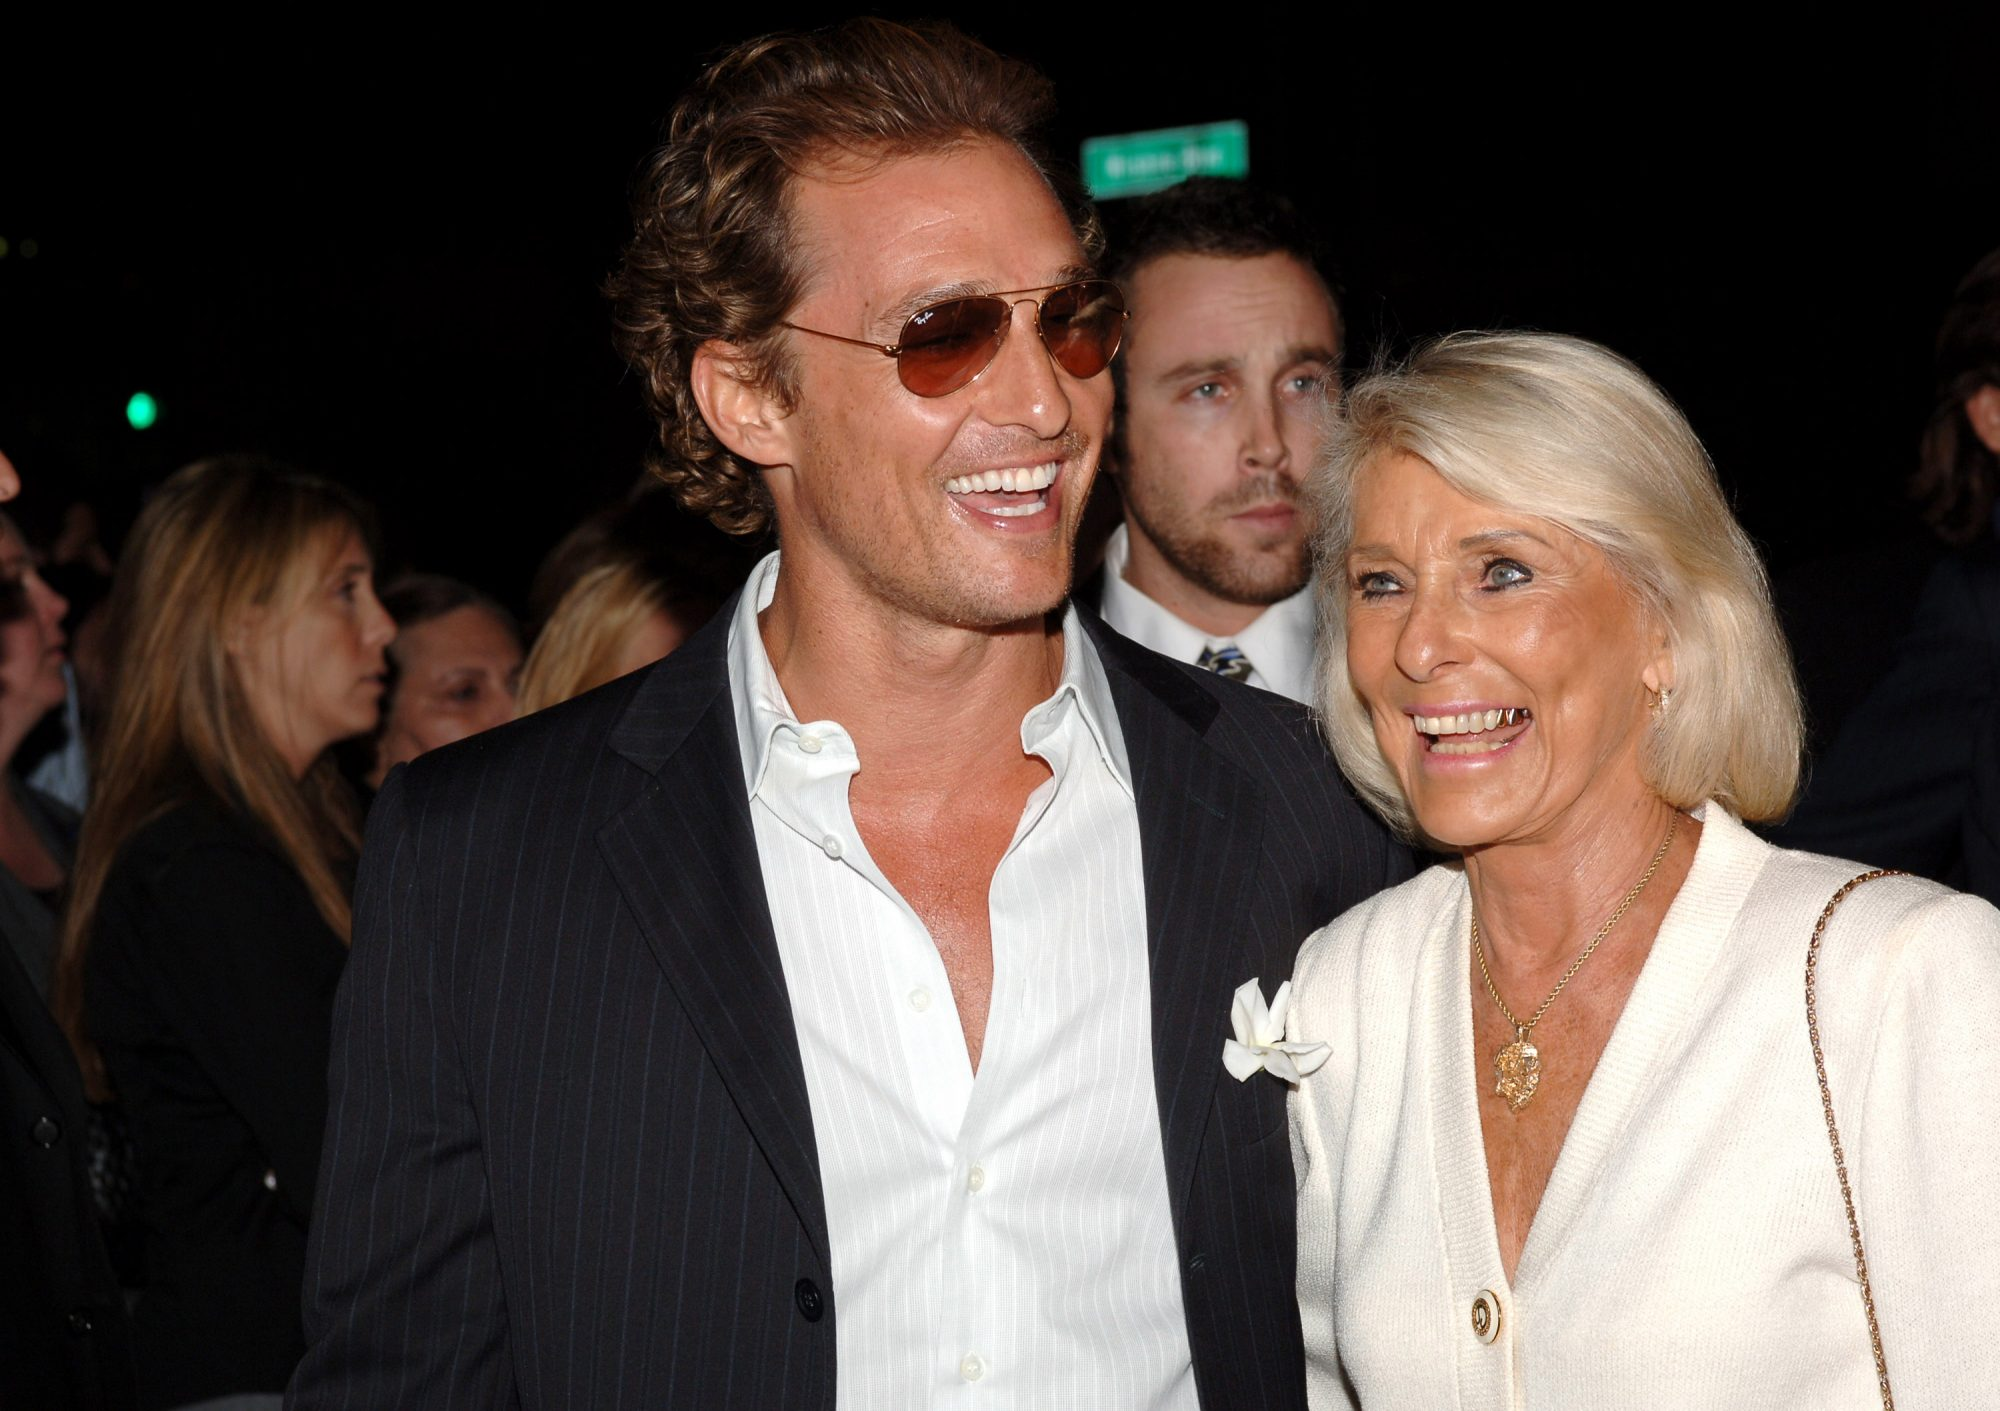 Matthew McConaughey Mom Quotes chase dreams